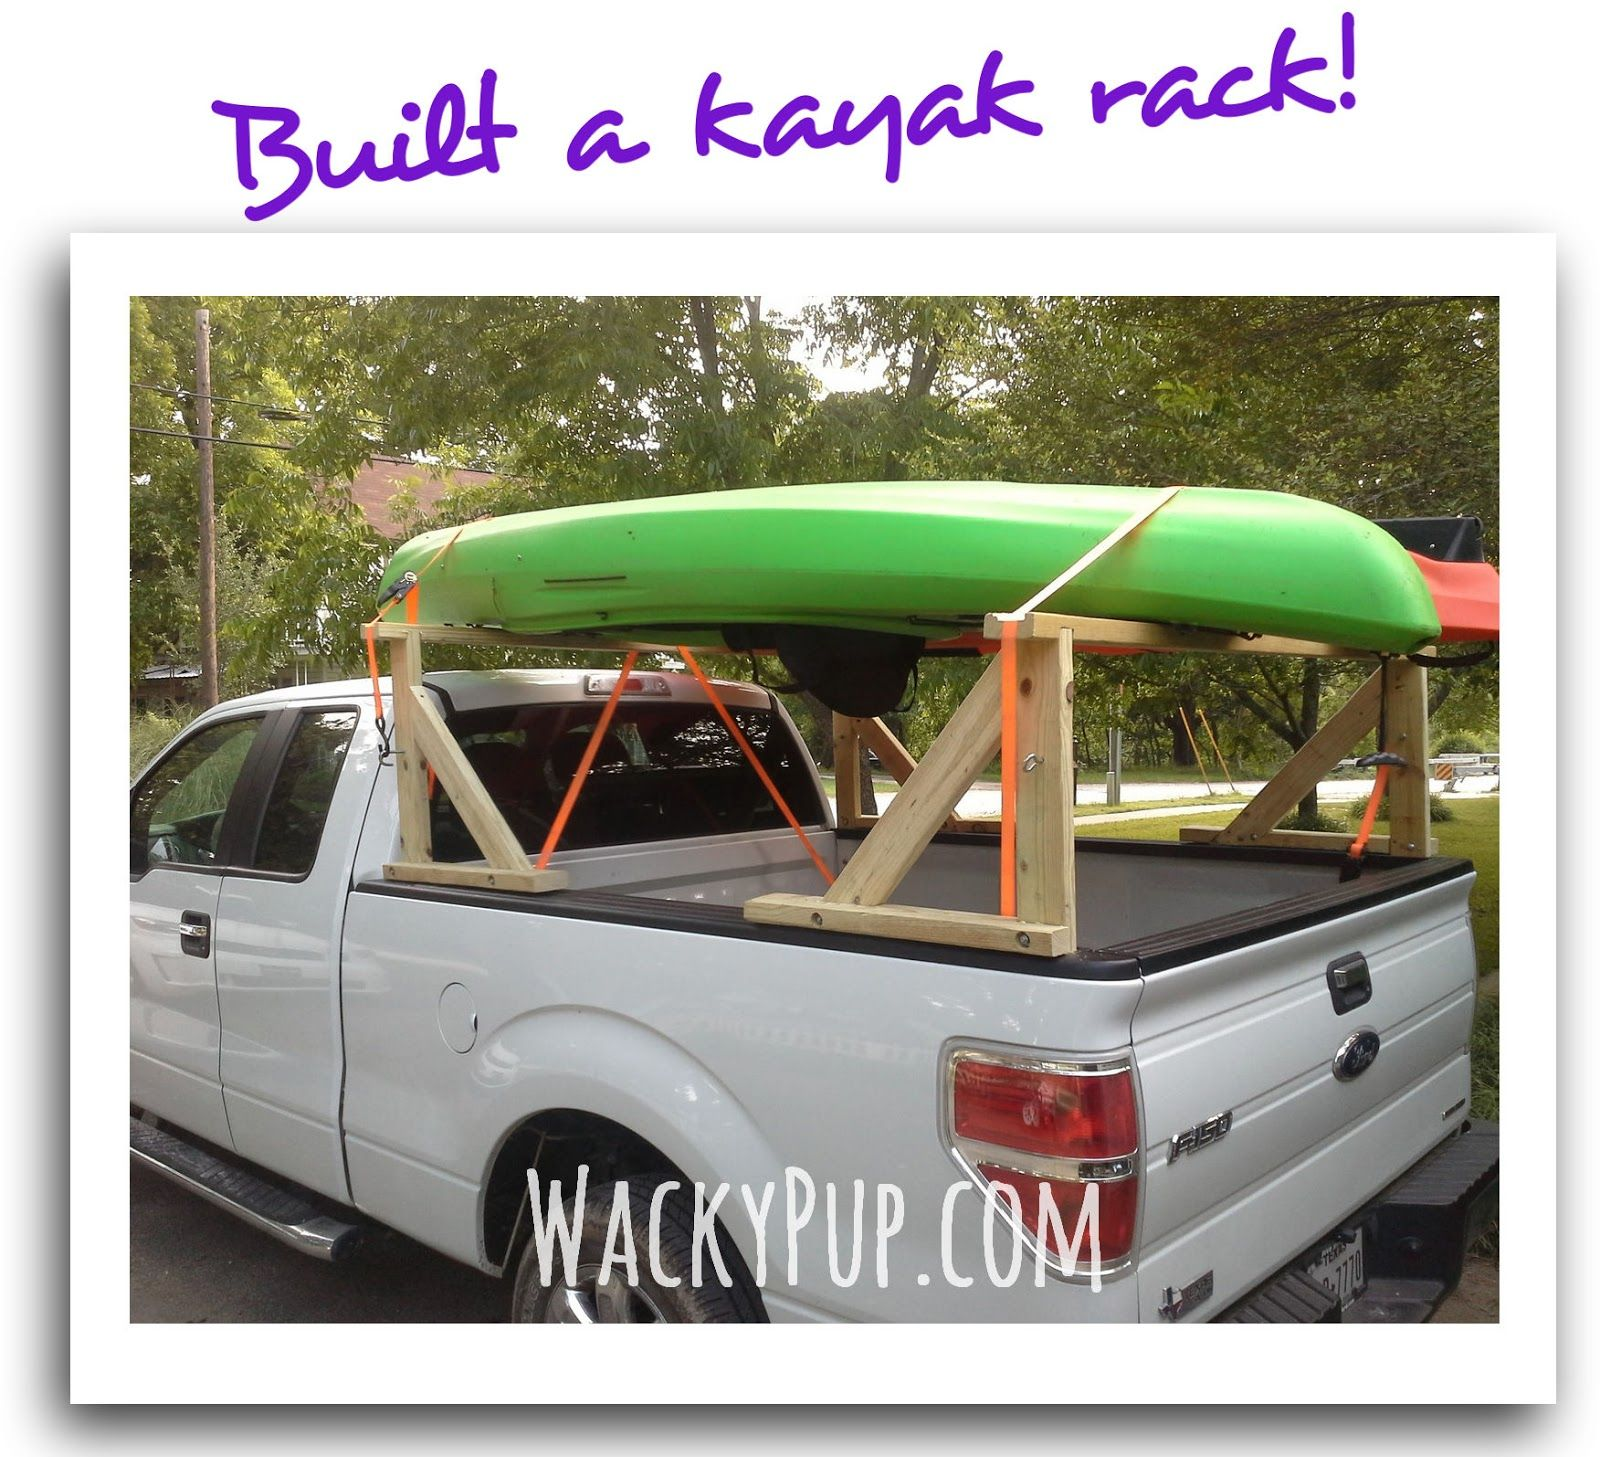 pvc of waters bwca cfm ladder two racks boundary index truck gear straps with did canoe here pool made rack forum diy my and is roof cover trucks what pipe i noodle black out canoeiowa for a kayak bed